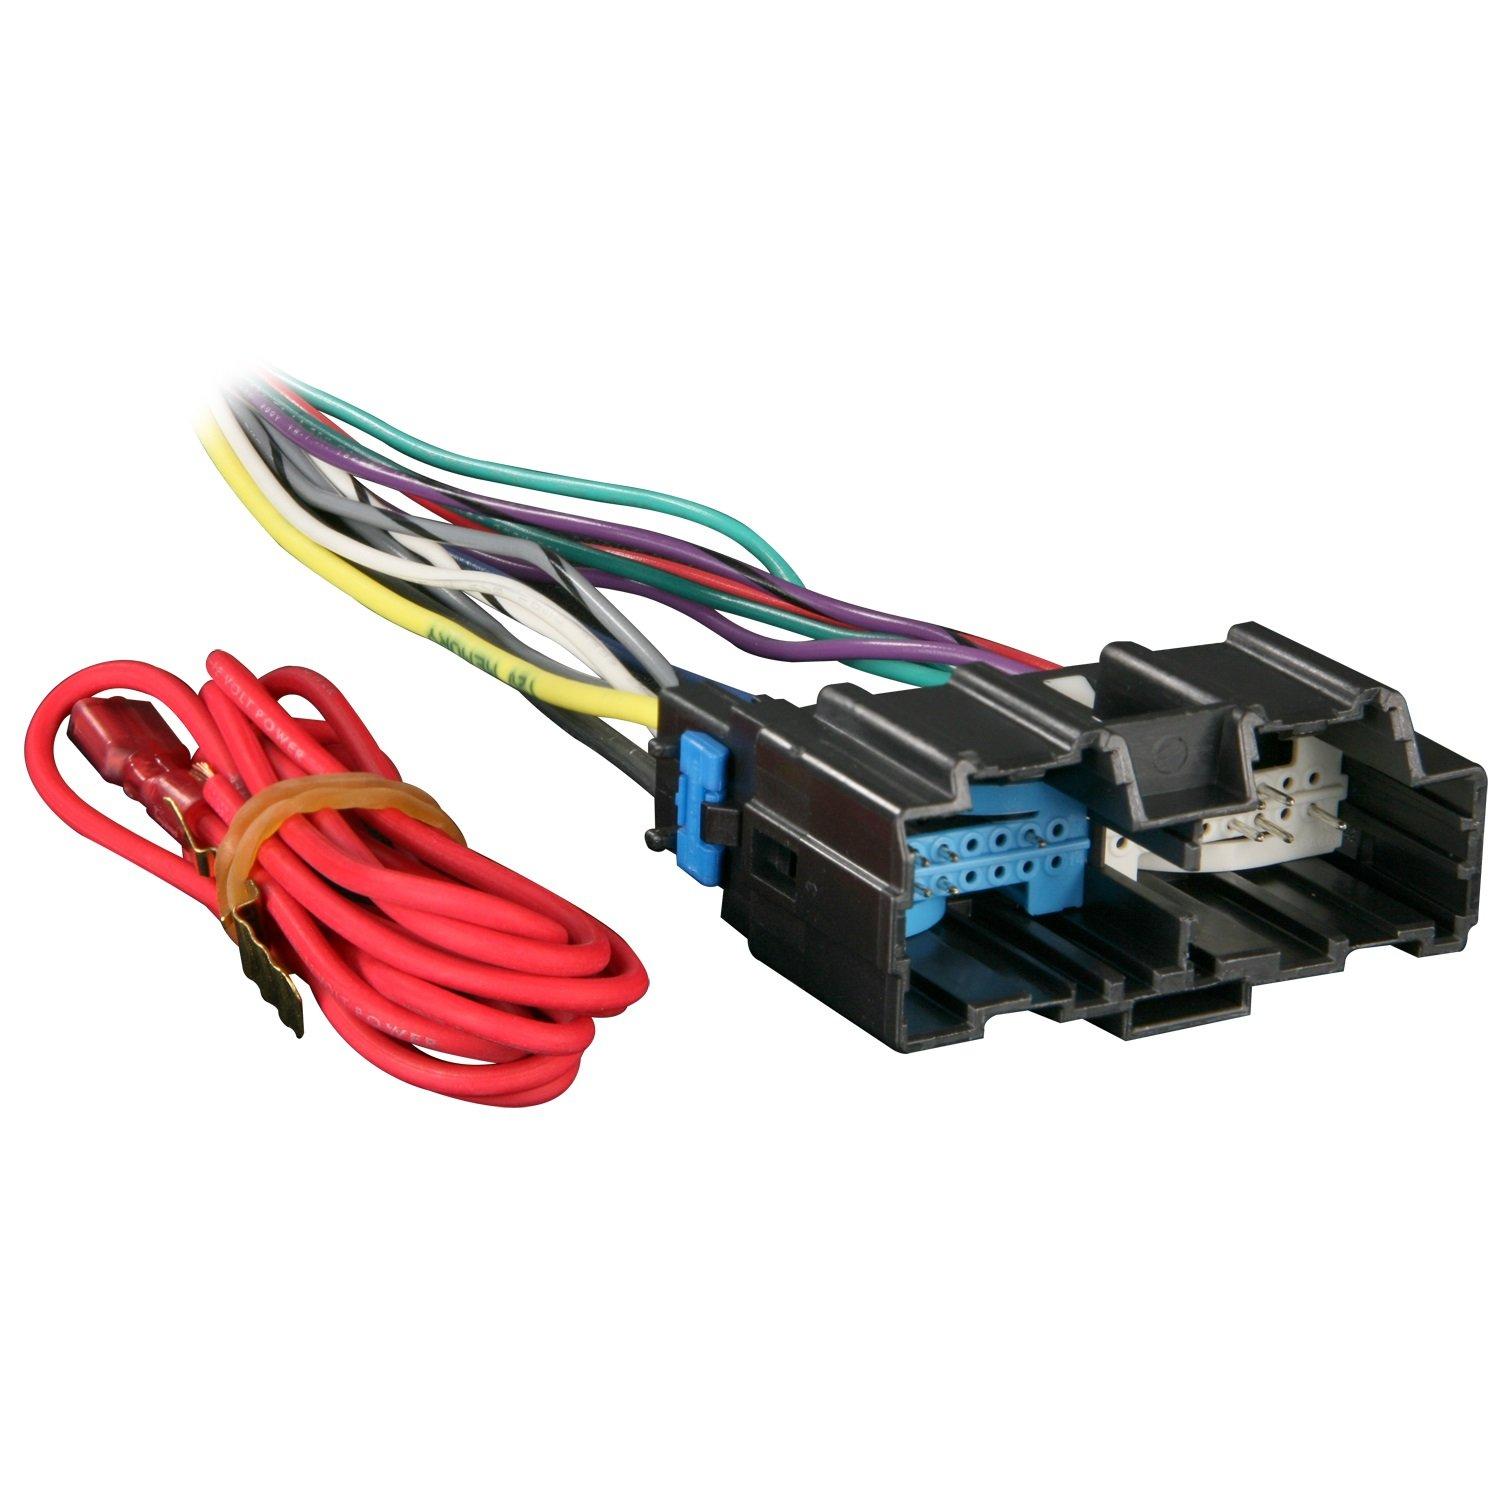 amazon com metra 70 2105 radio wiring harness for impala monte rh amazon com 2008 chevy impala headlight wiring harness 2008 chevy impala shifter wiring harness